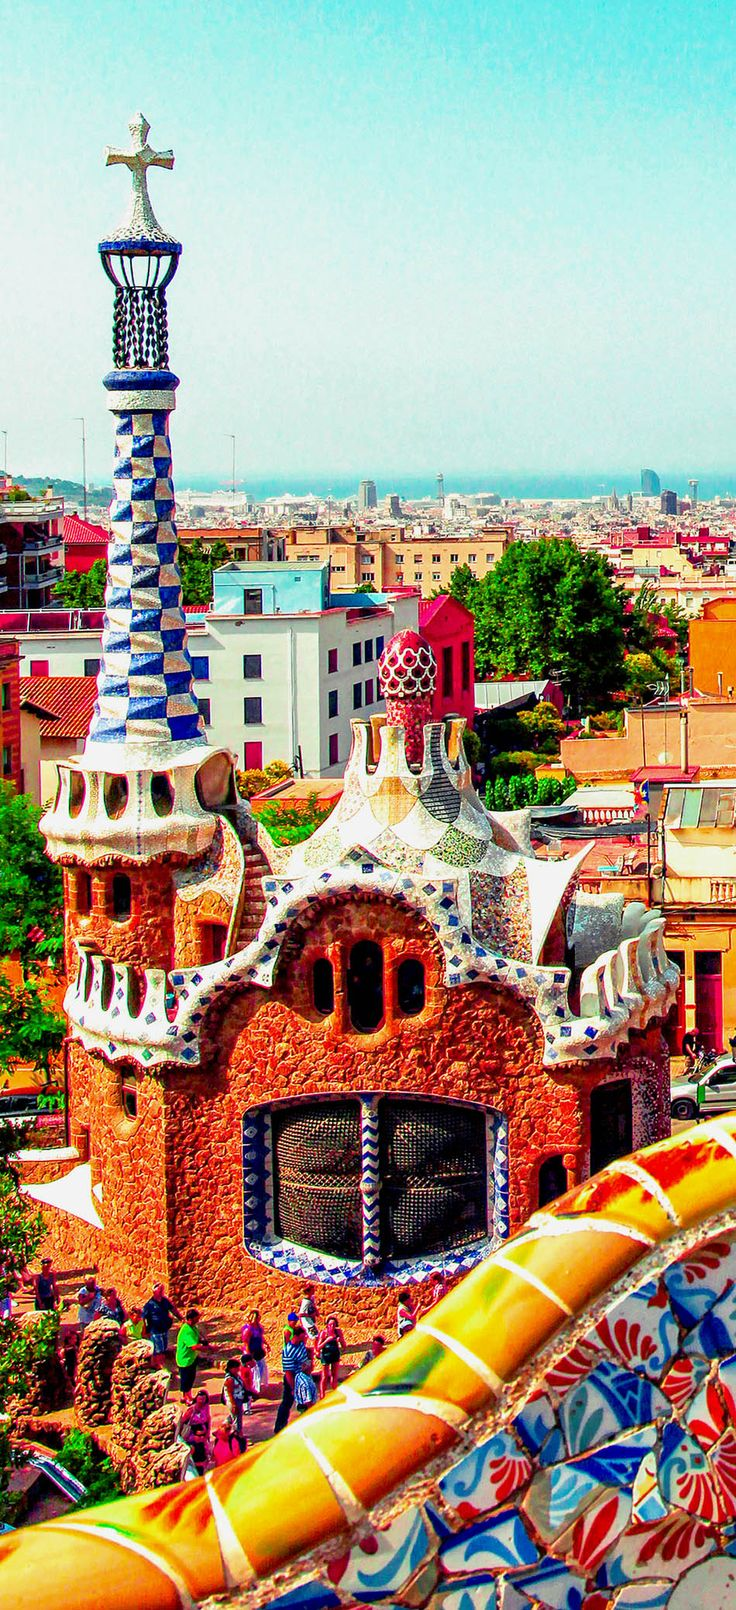 WE LOVE THE BRIGHT COLOURS OF BARCELONA! If you love arts, culture, tapas, the beach, food markets and more then Barcelona is a must see city for you. To book a your trip to Barcelona check out www.solisoltravel.com for all our offers on accommodations, activities, transfers and more!